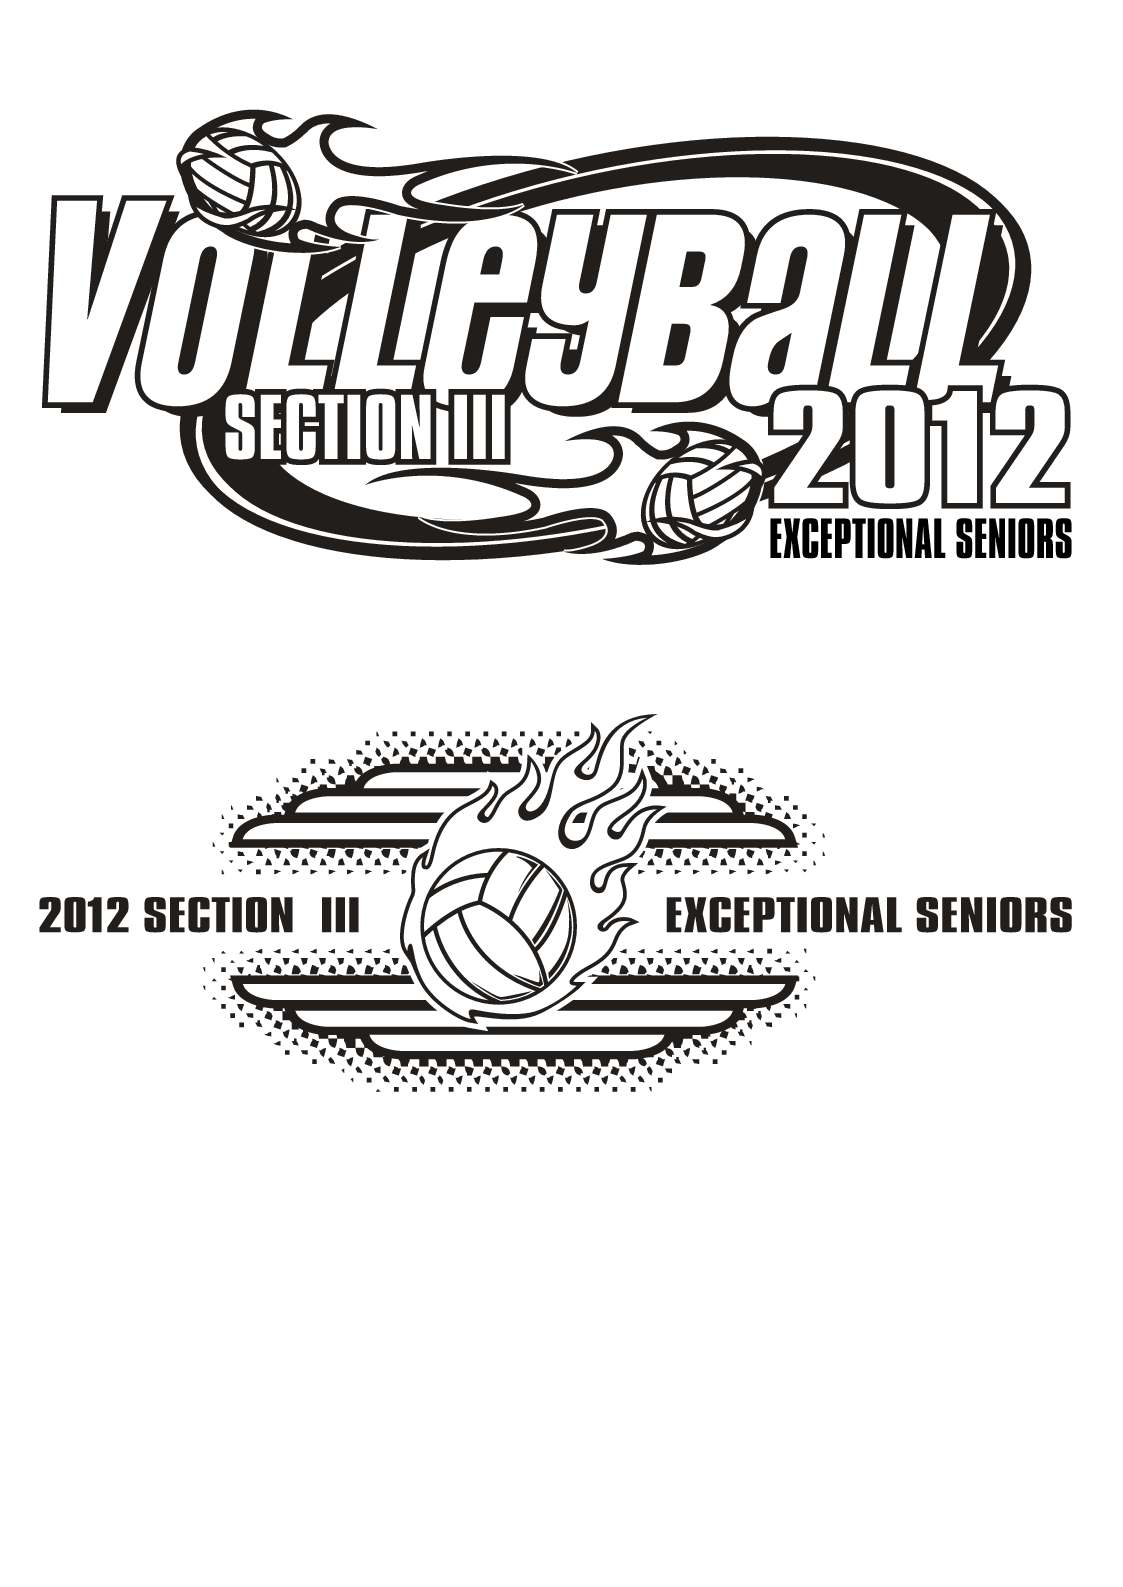 Exceptional Seniors Volleyball